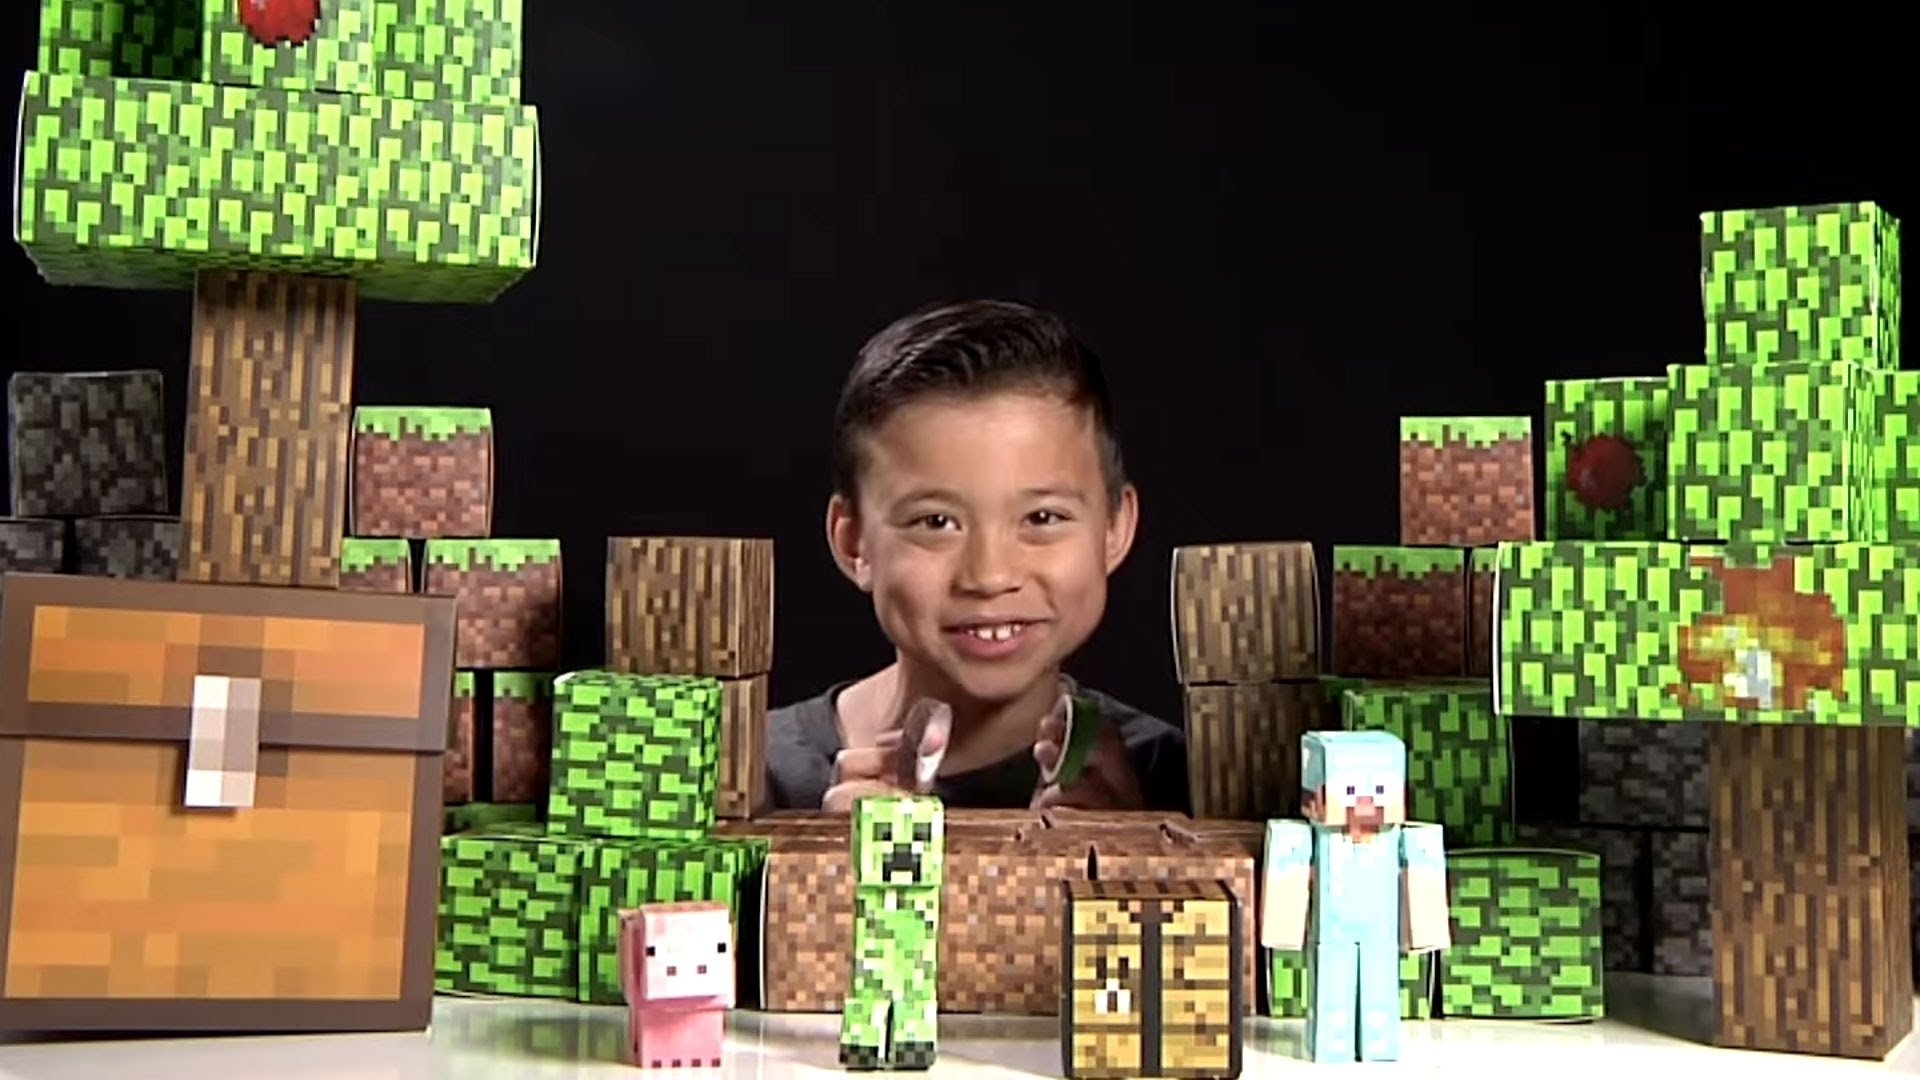 10 Attractive Gift Ideas 9 Year Old Boy this 9 year old makes 1 million a year opening toys youtube 2021